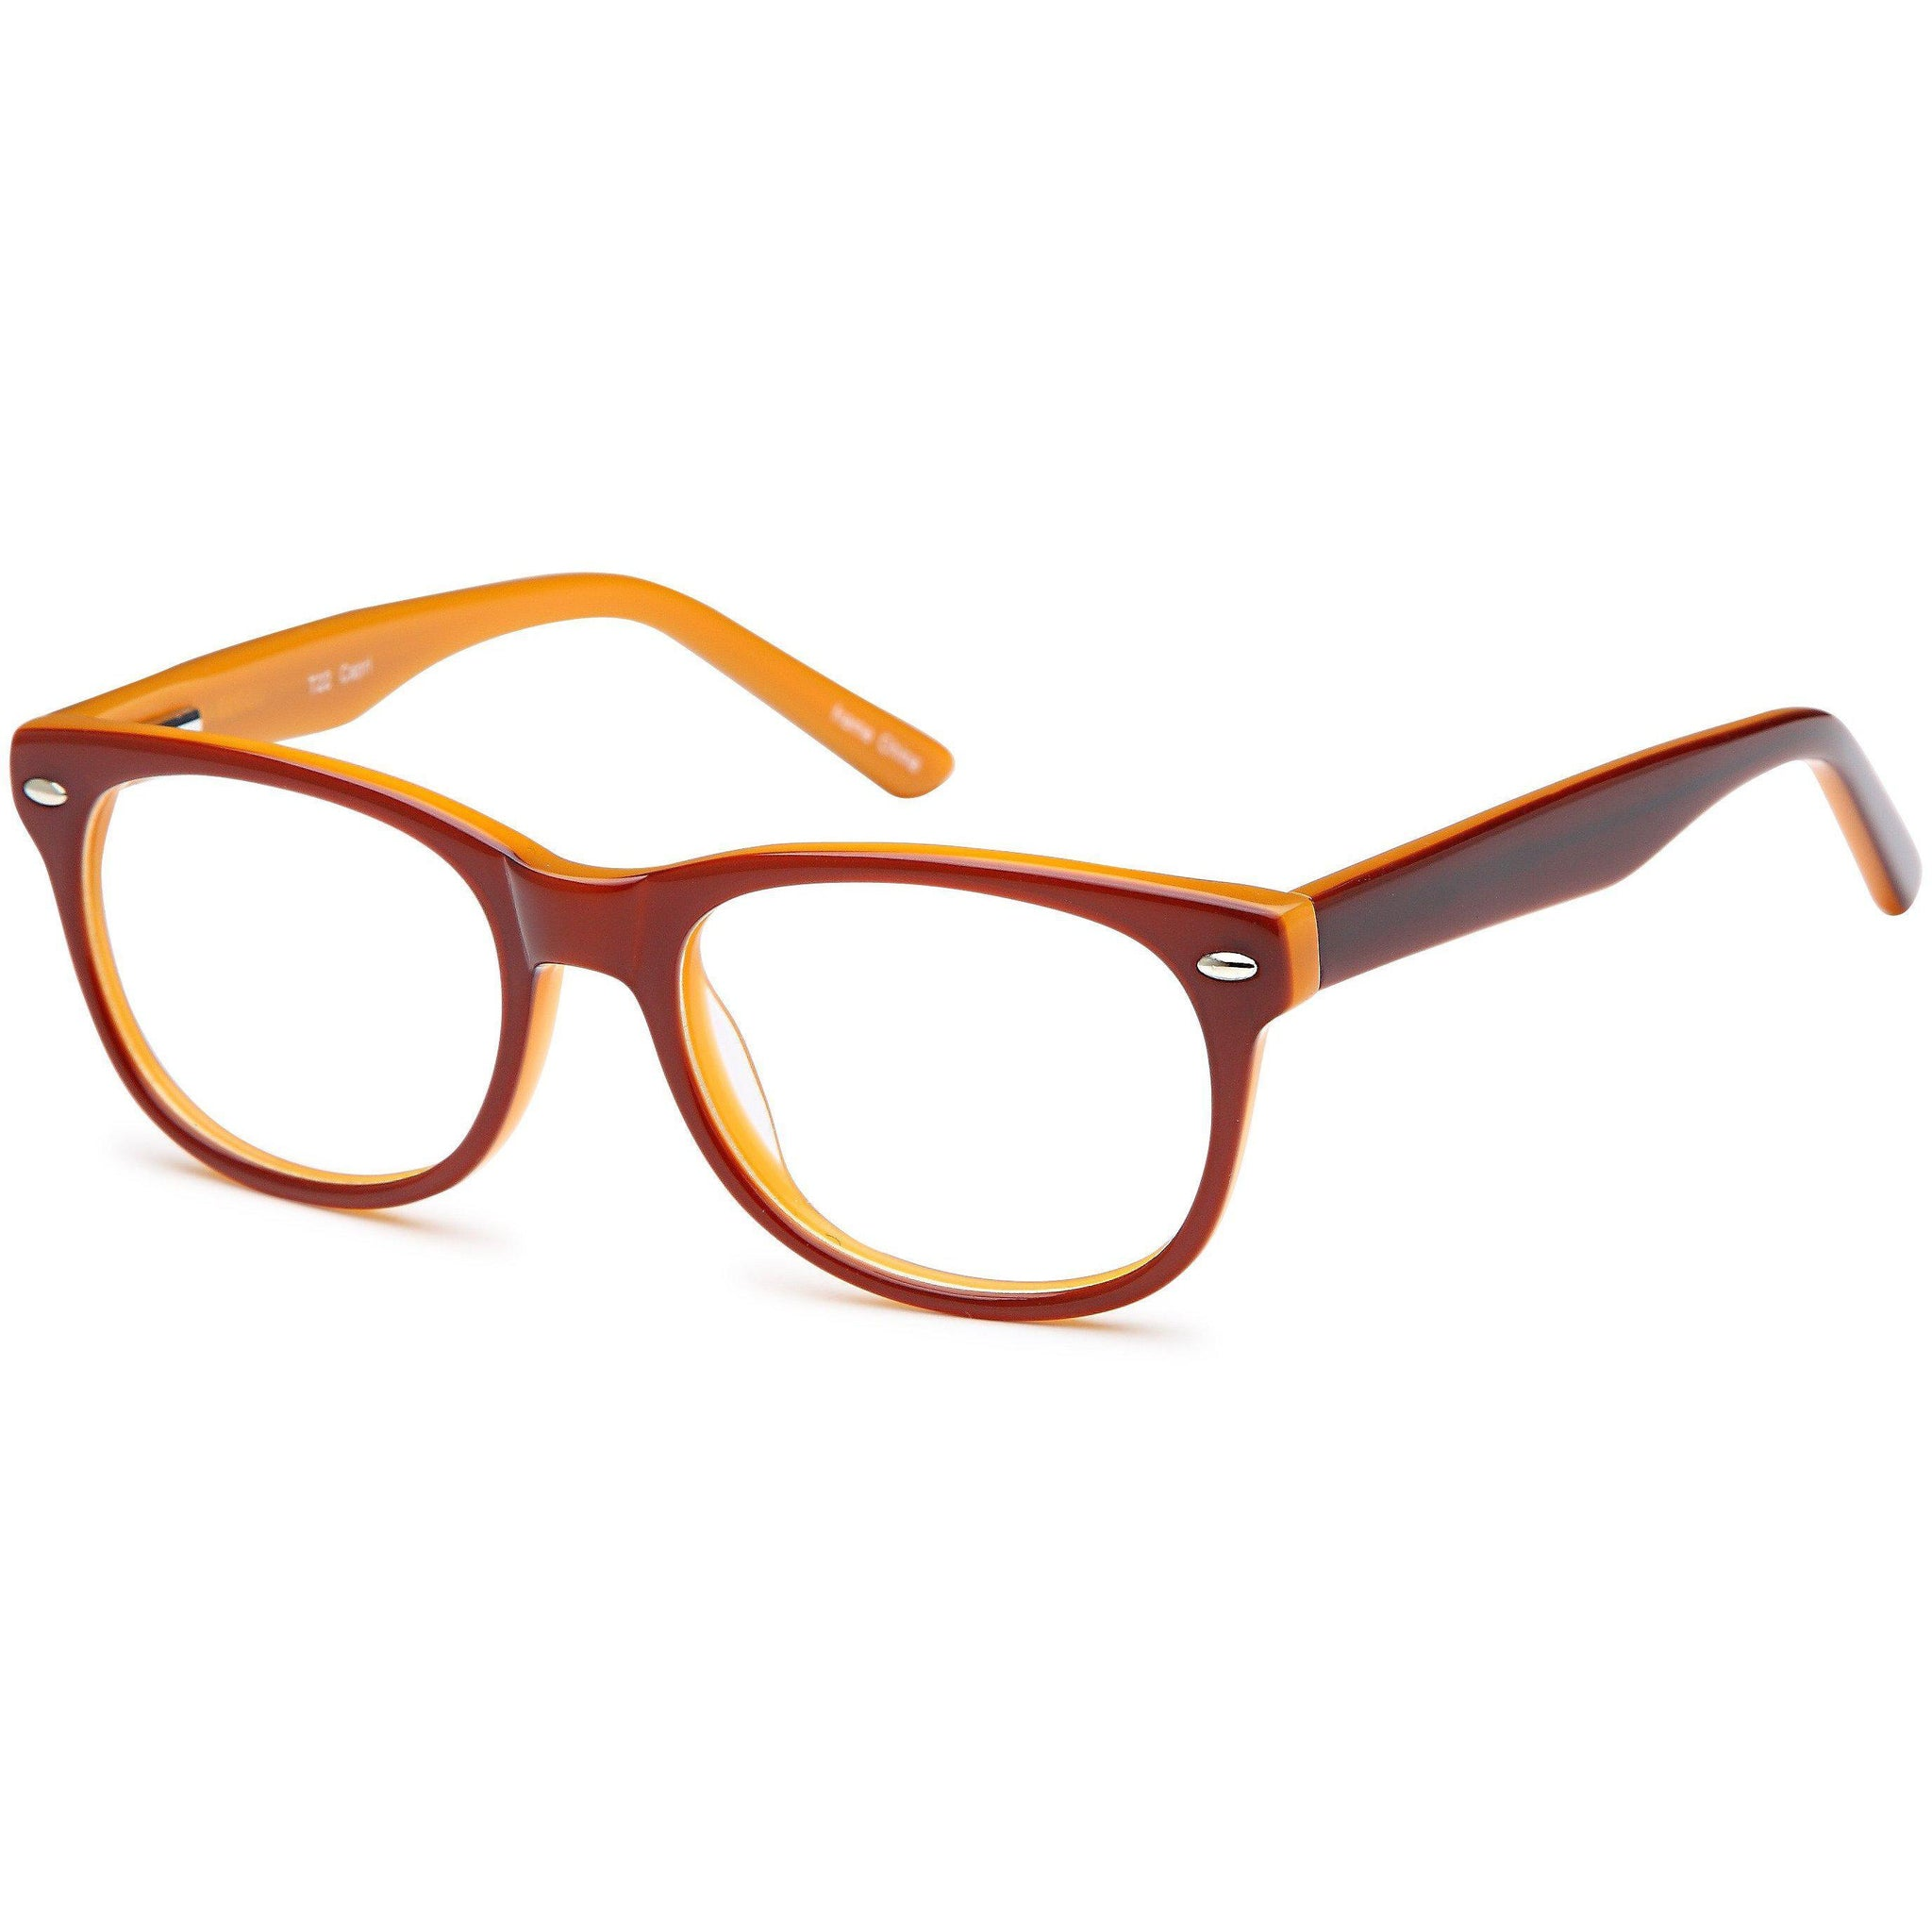 OnTrend Prescription Glasses T 22 Eyeglasses Frames